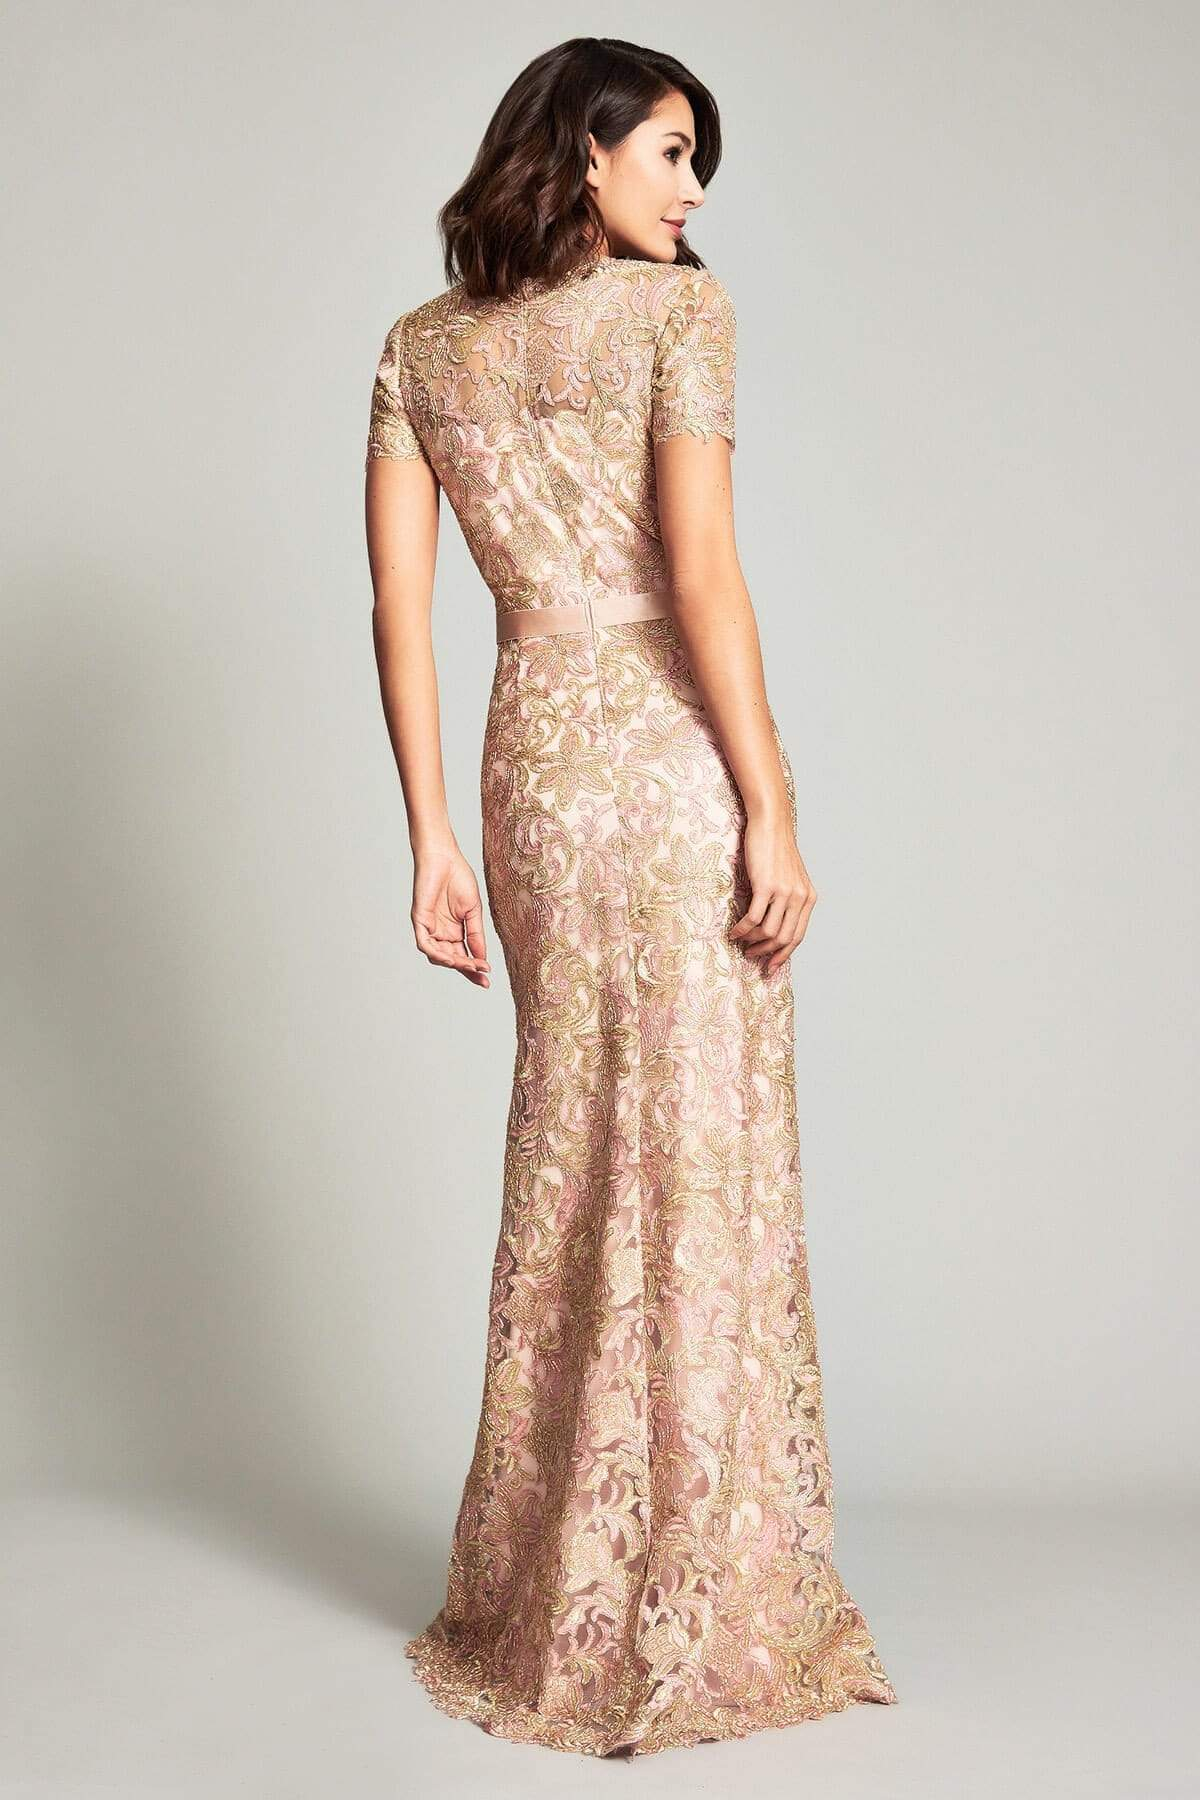 Tadashi Shoji - Caresse Semi-Fitted Gown Evening Dresses